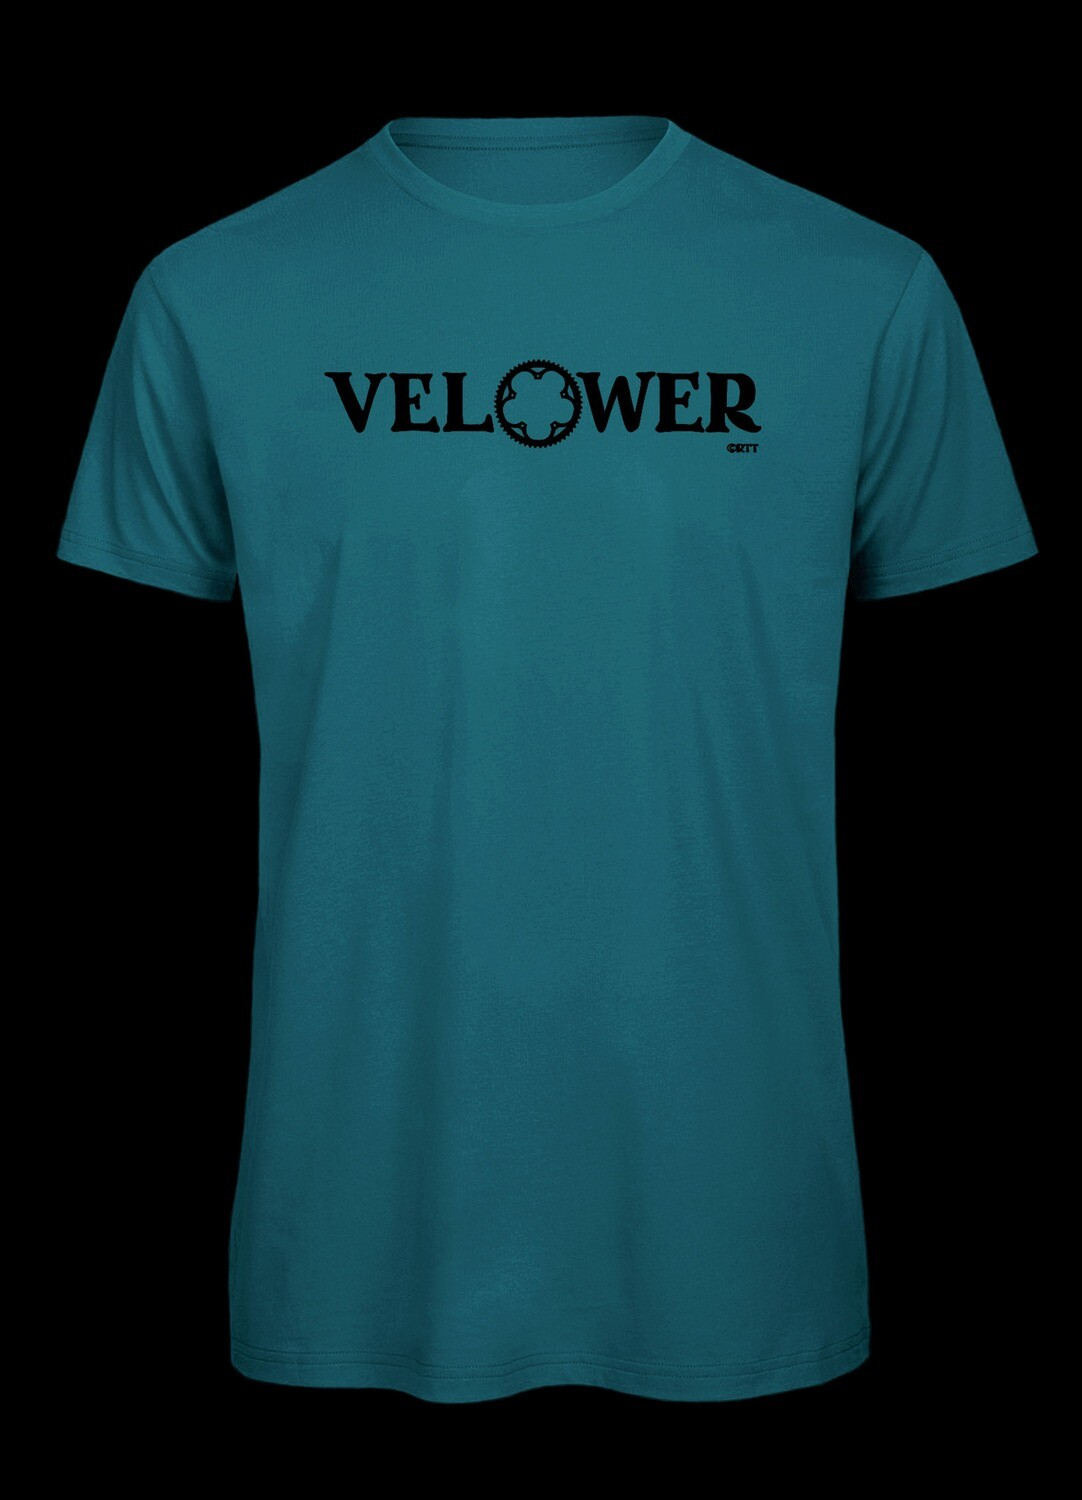 Velower, shirt for cyclists